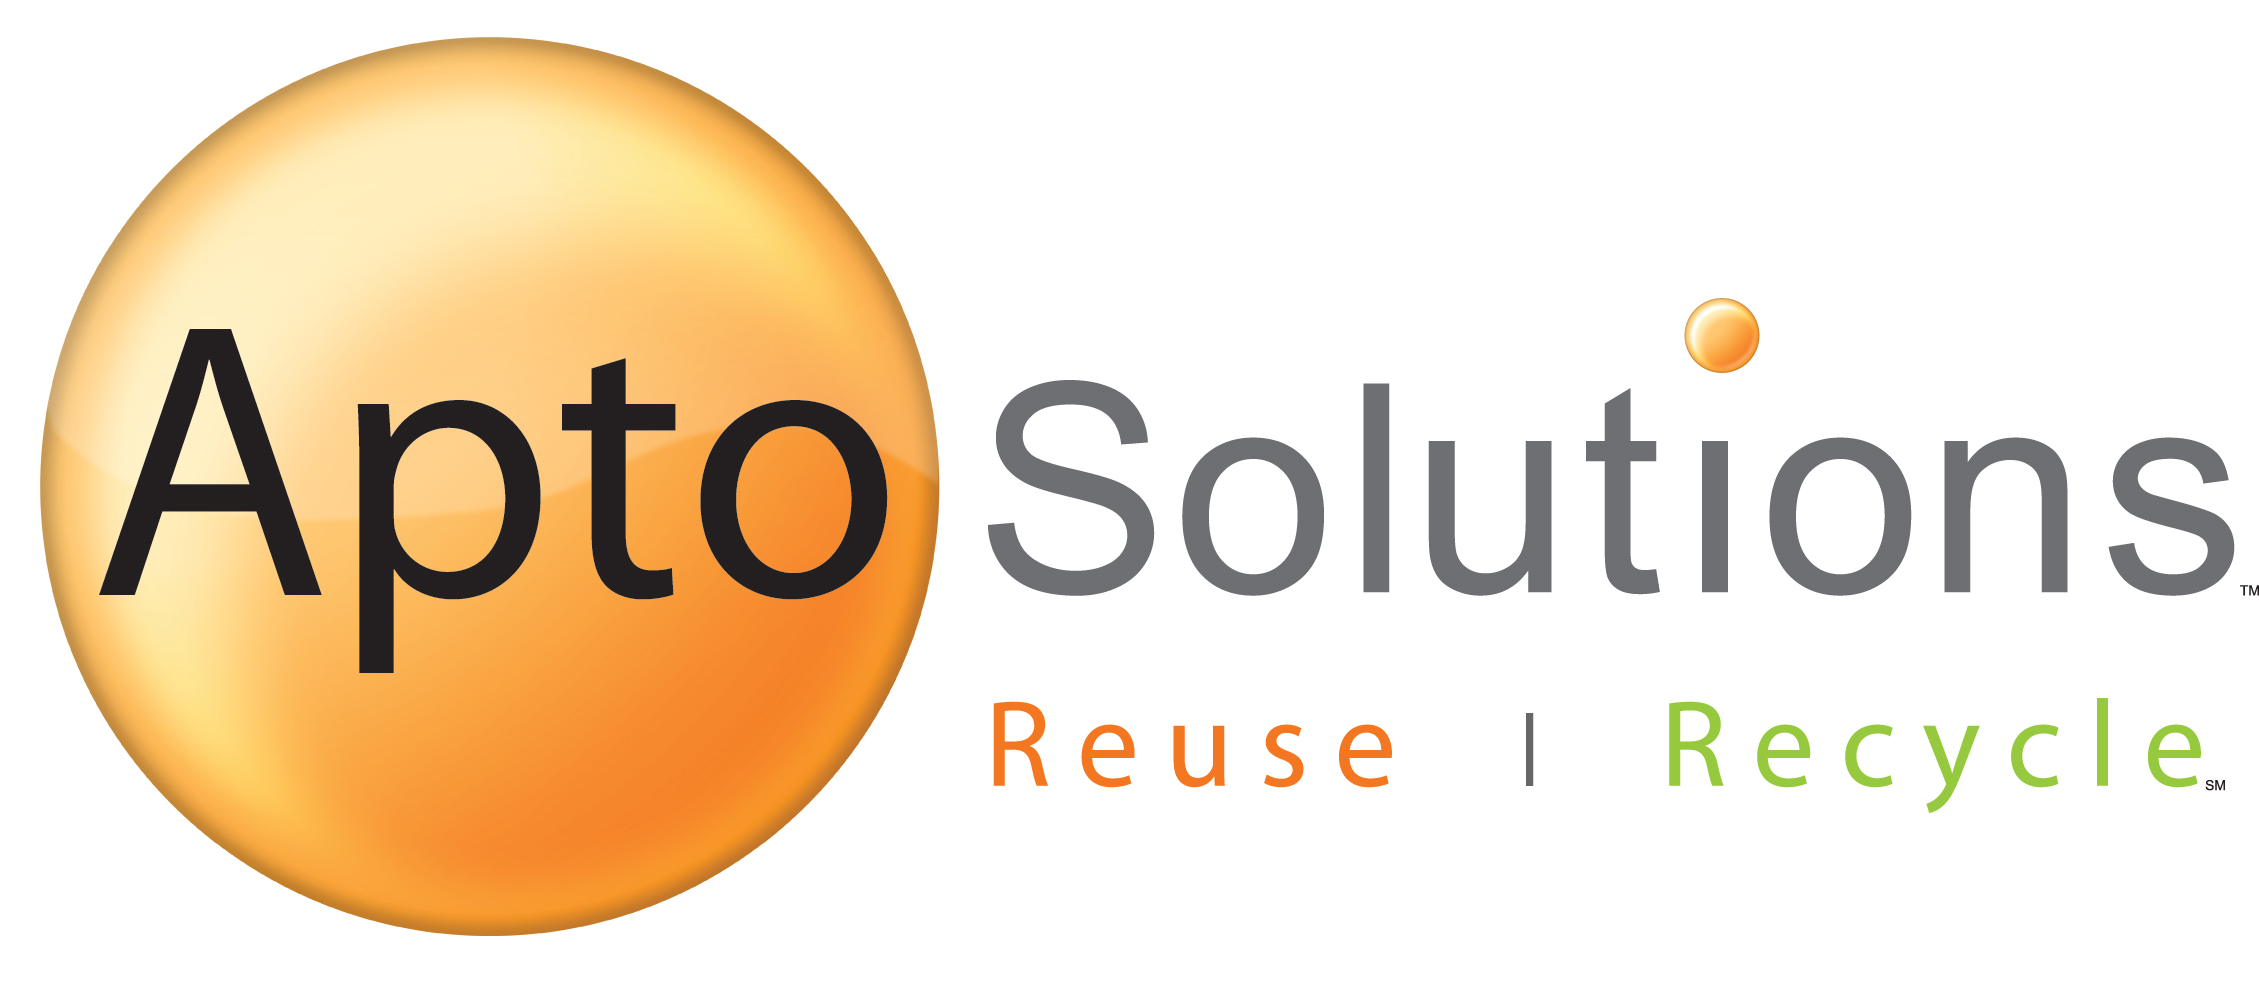 Image Result For Asset Recovery Solutionsa